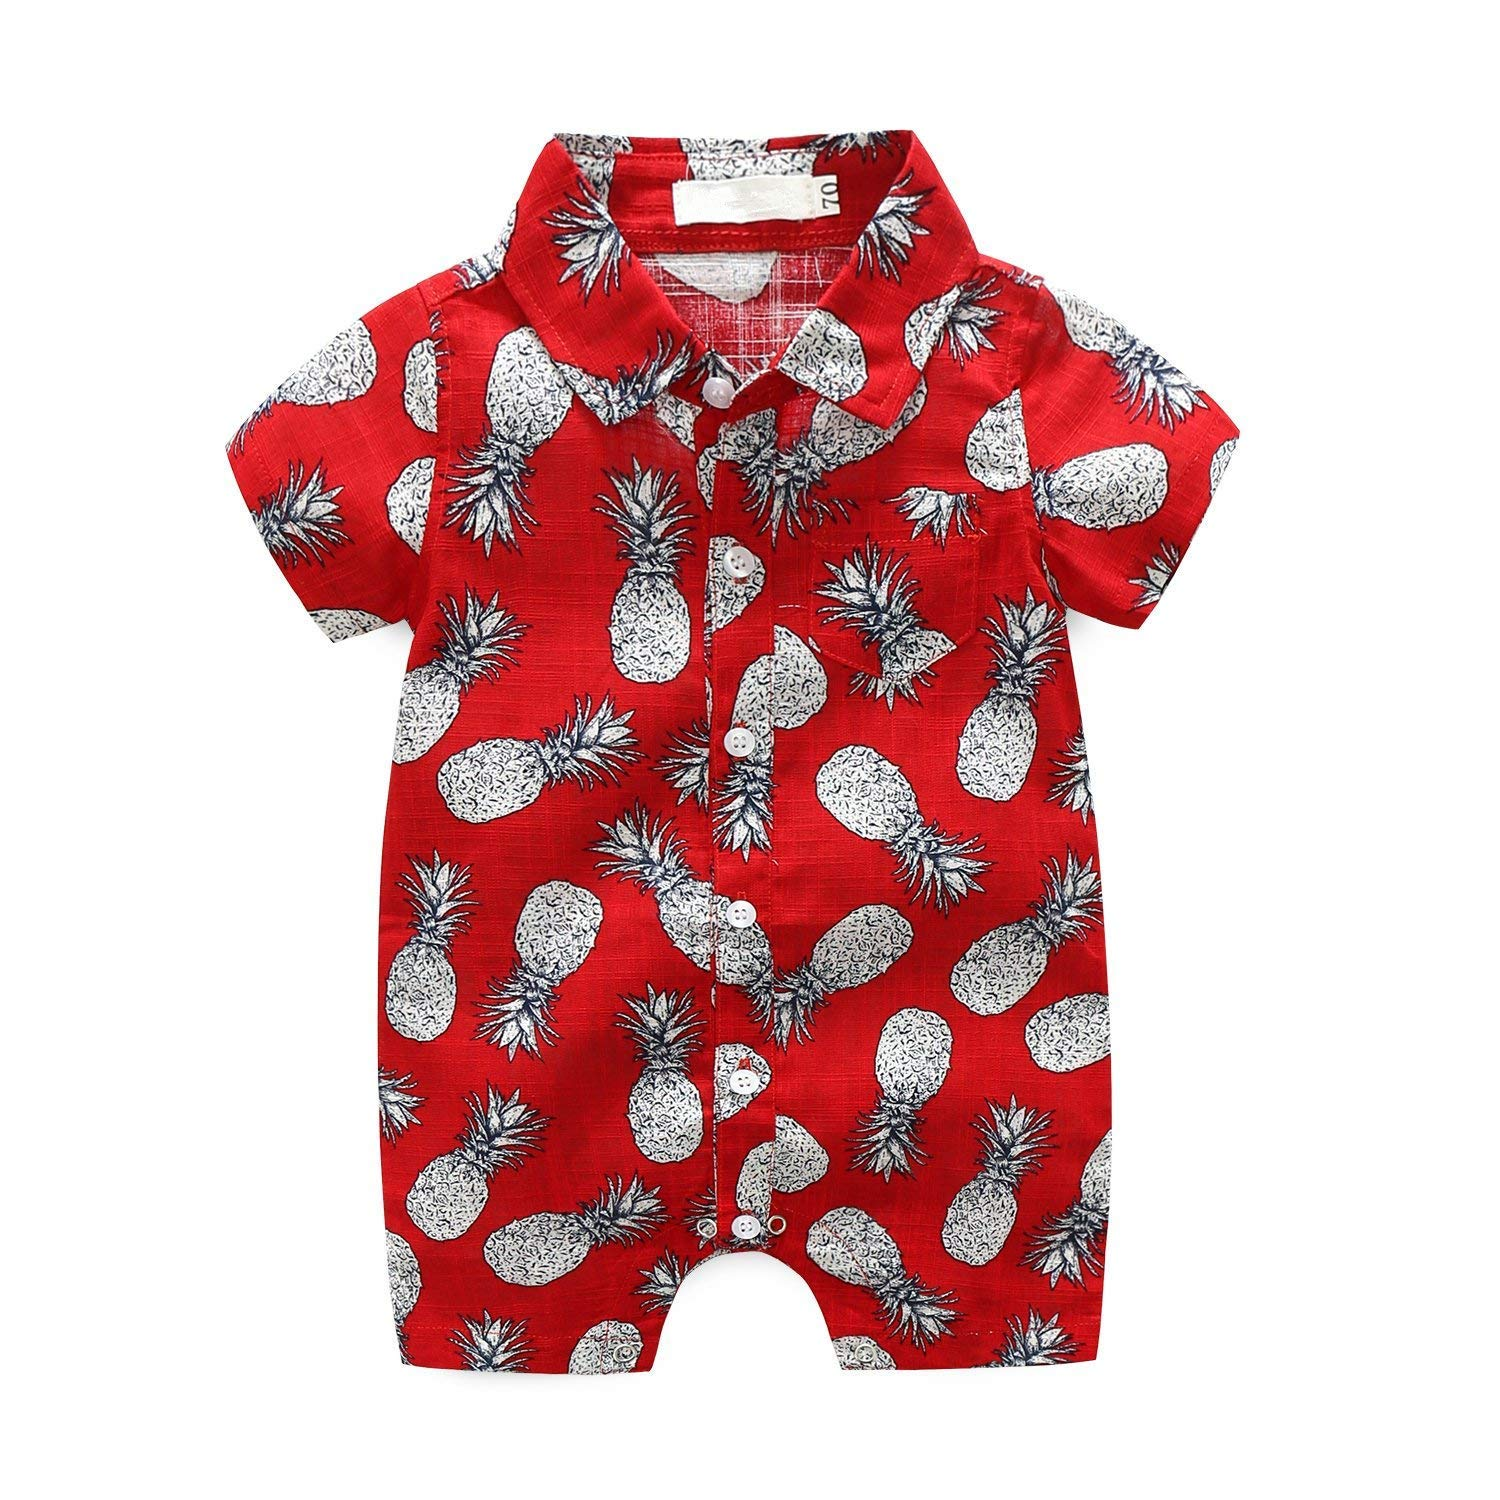 Gubabycci Newborn Baby Boys Short Sleeve Onesies Summer Printing Button-Down Polyester Casual Hawaiian Shirt Romper Outfits GTZ10